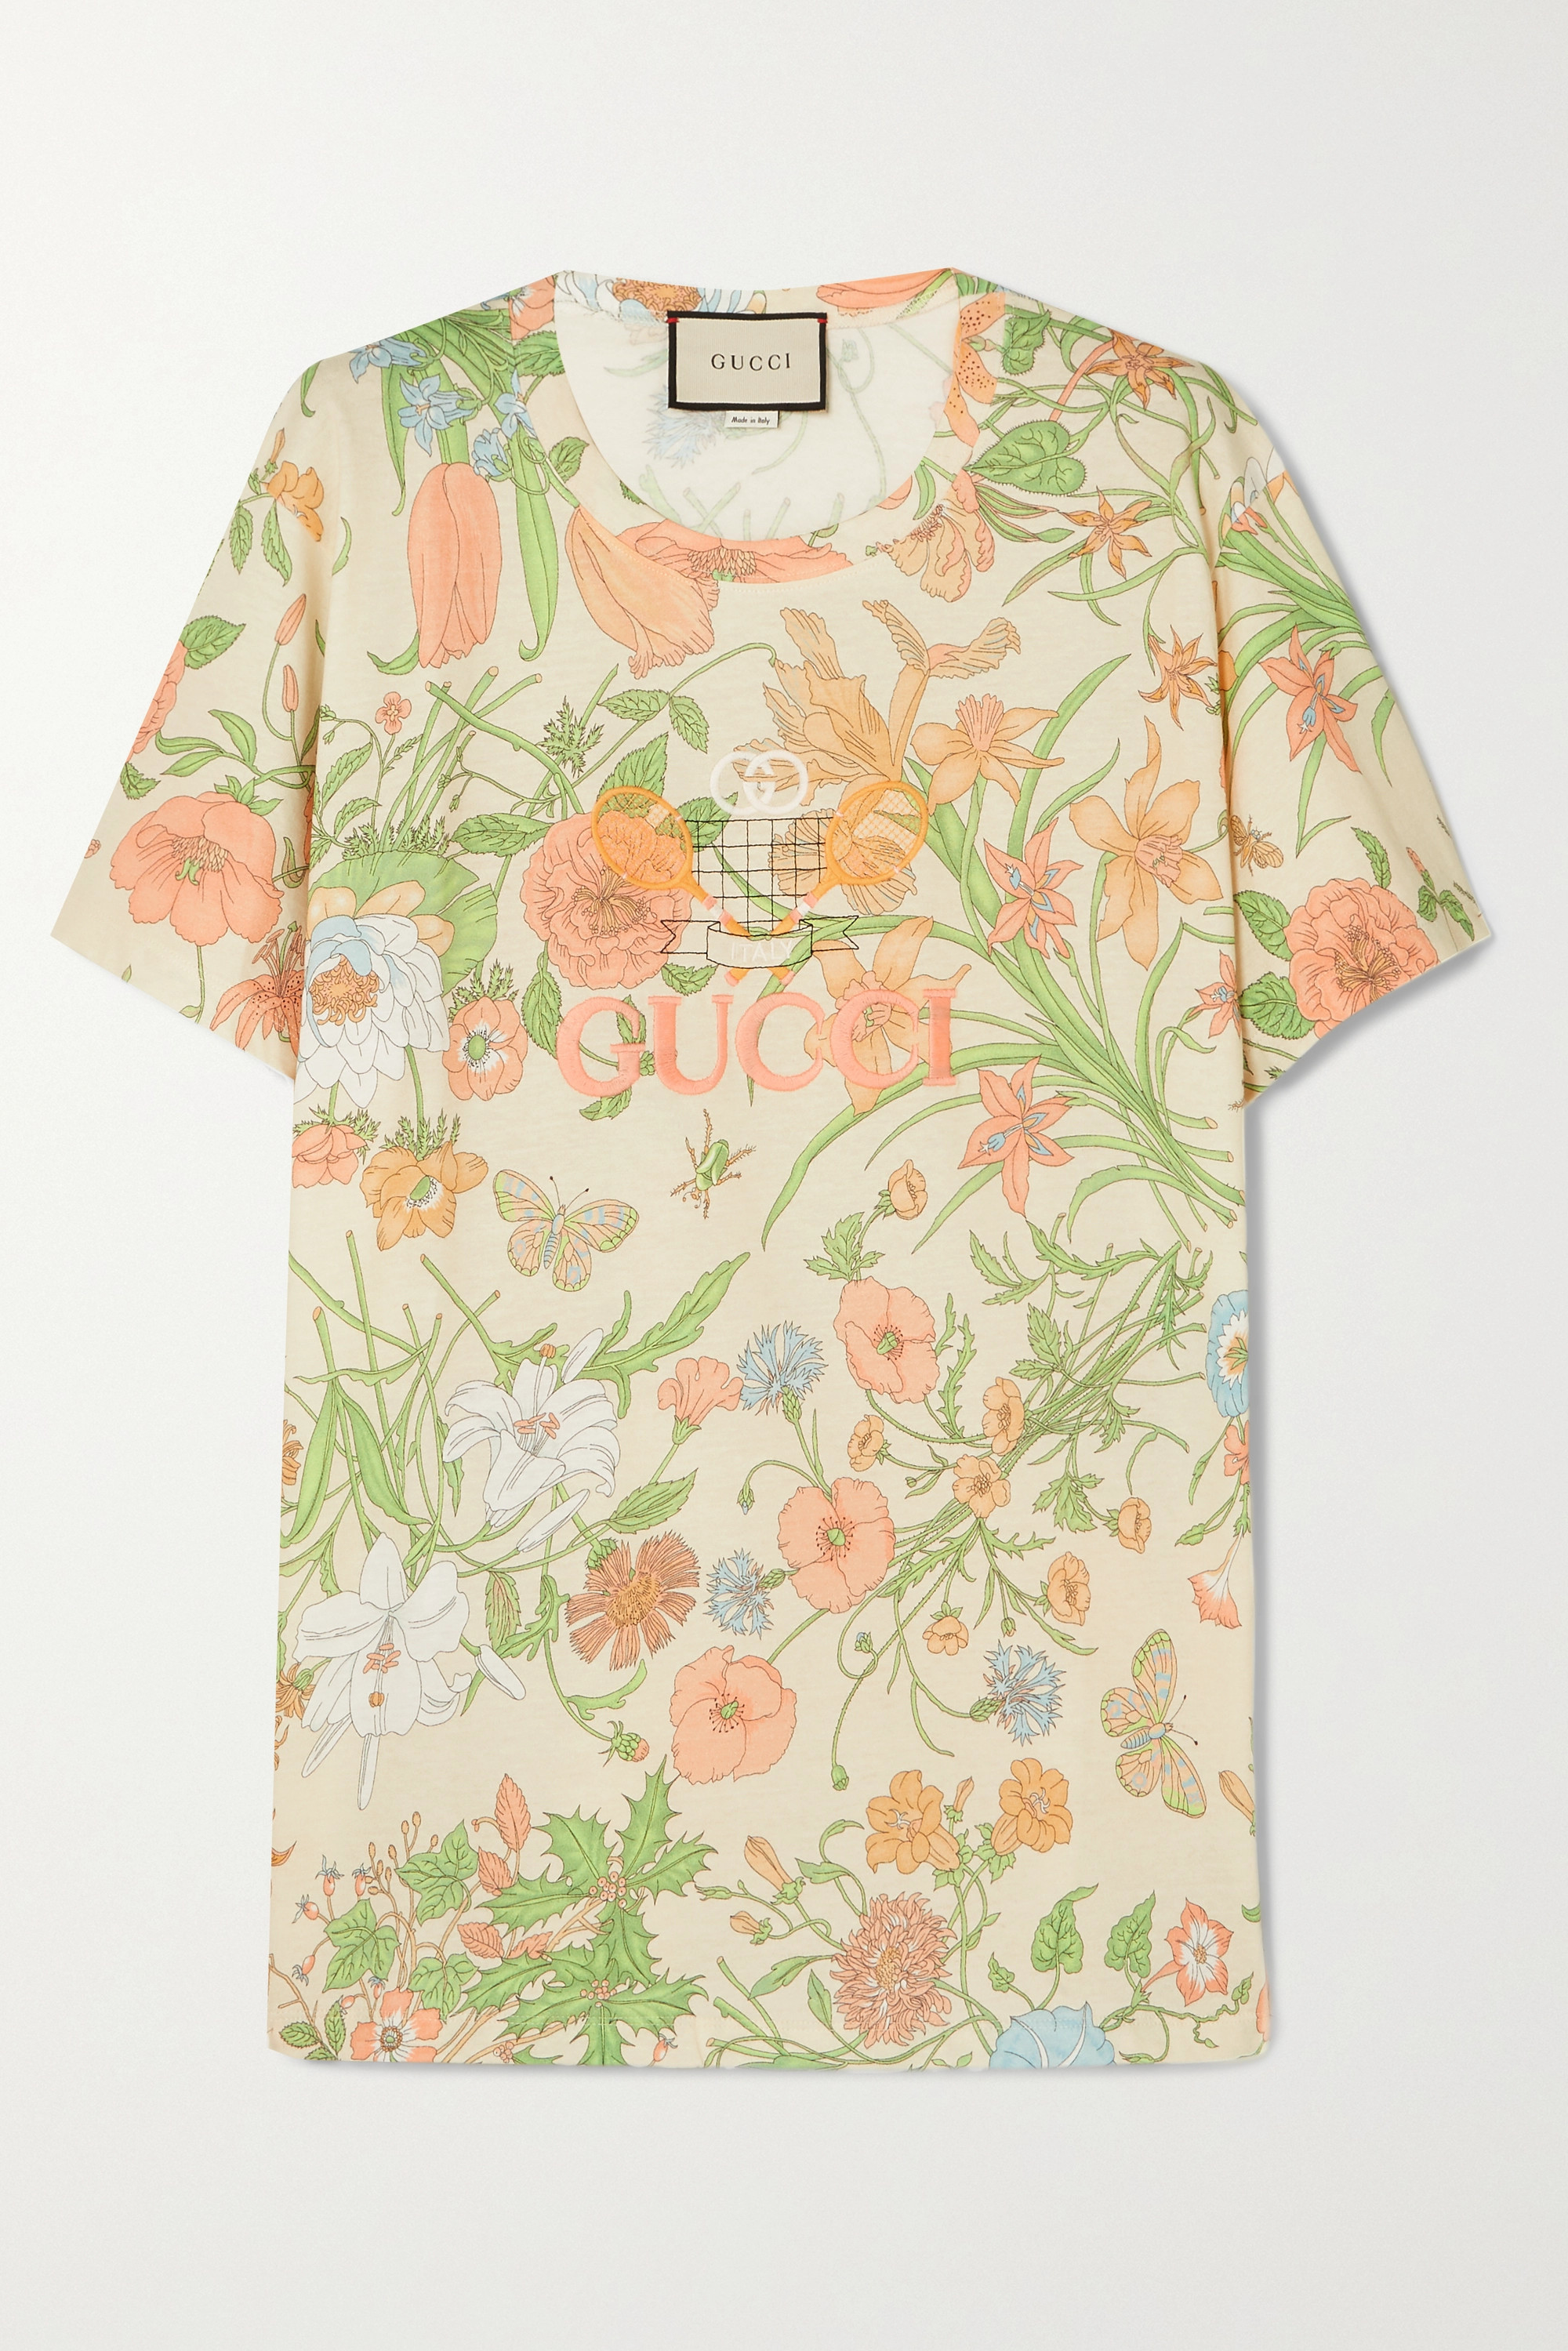 Gucci Embroidered floral-print cotton-jersey T-shirt